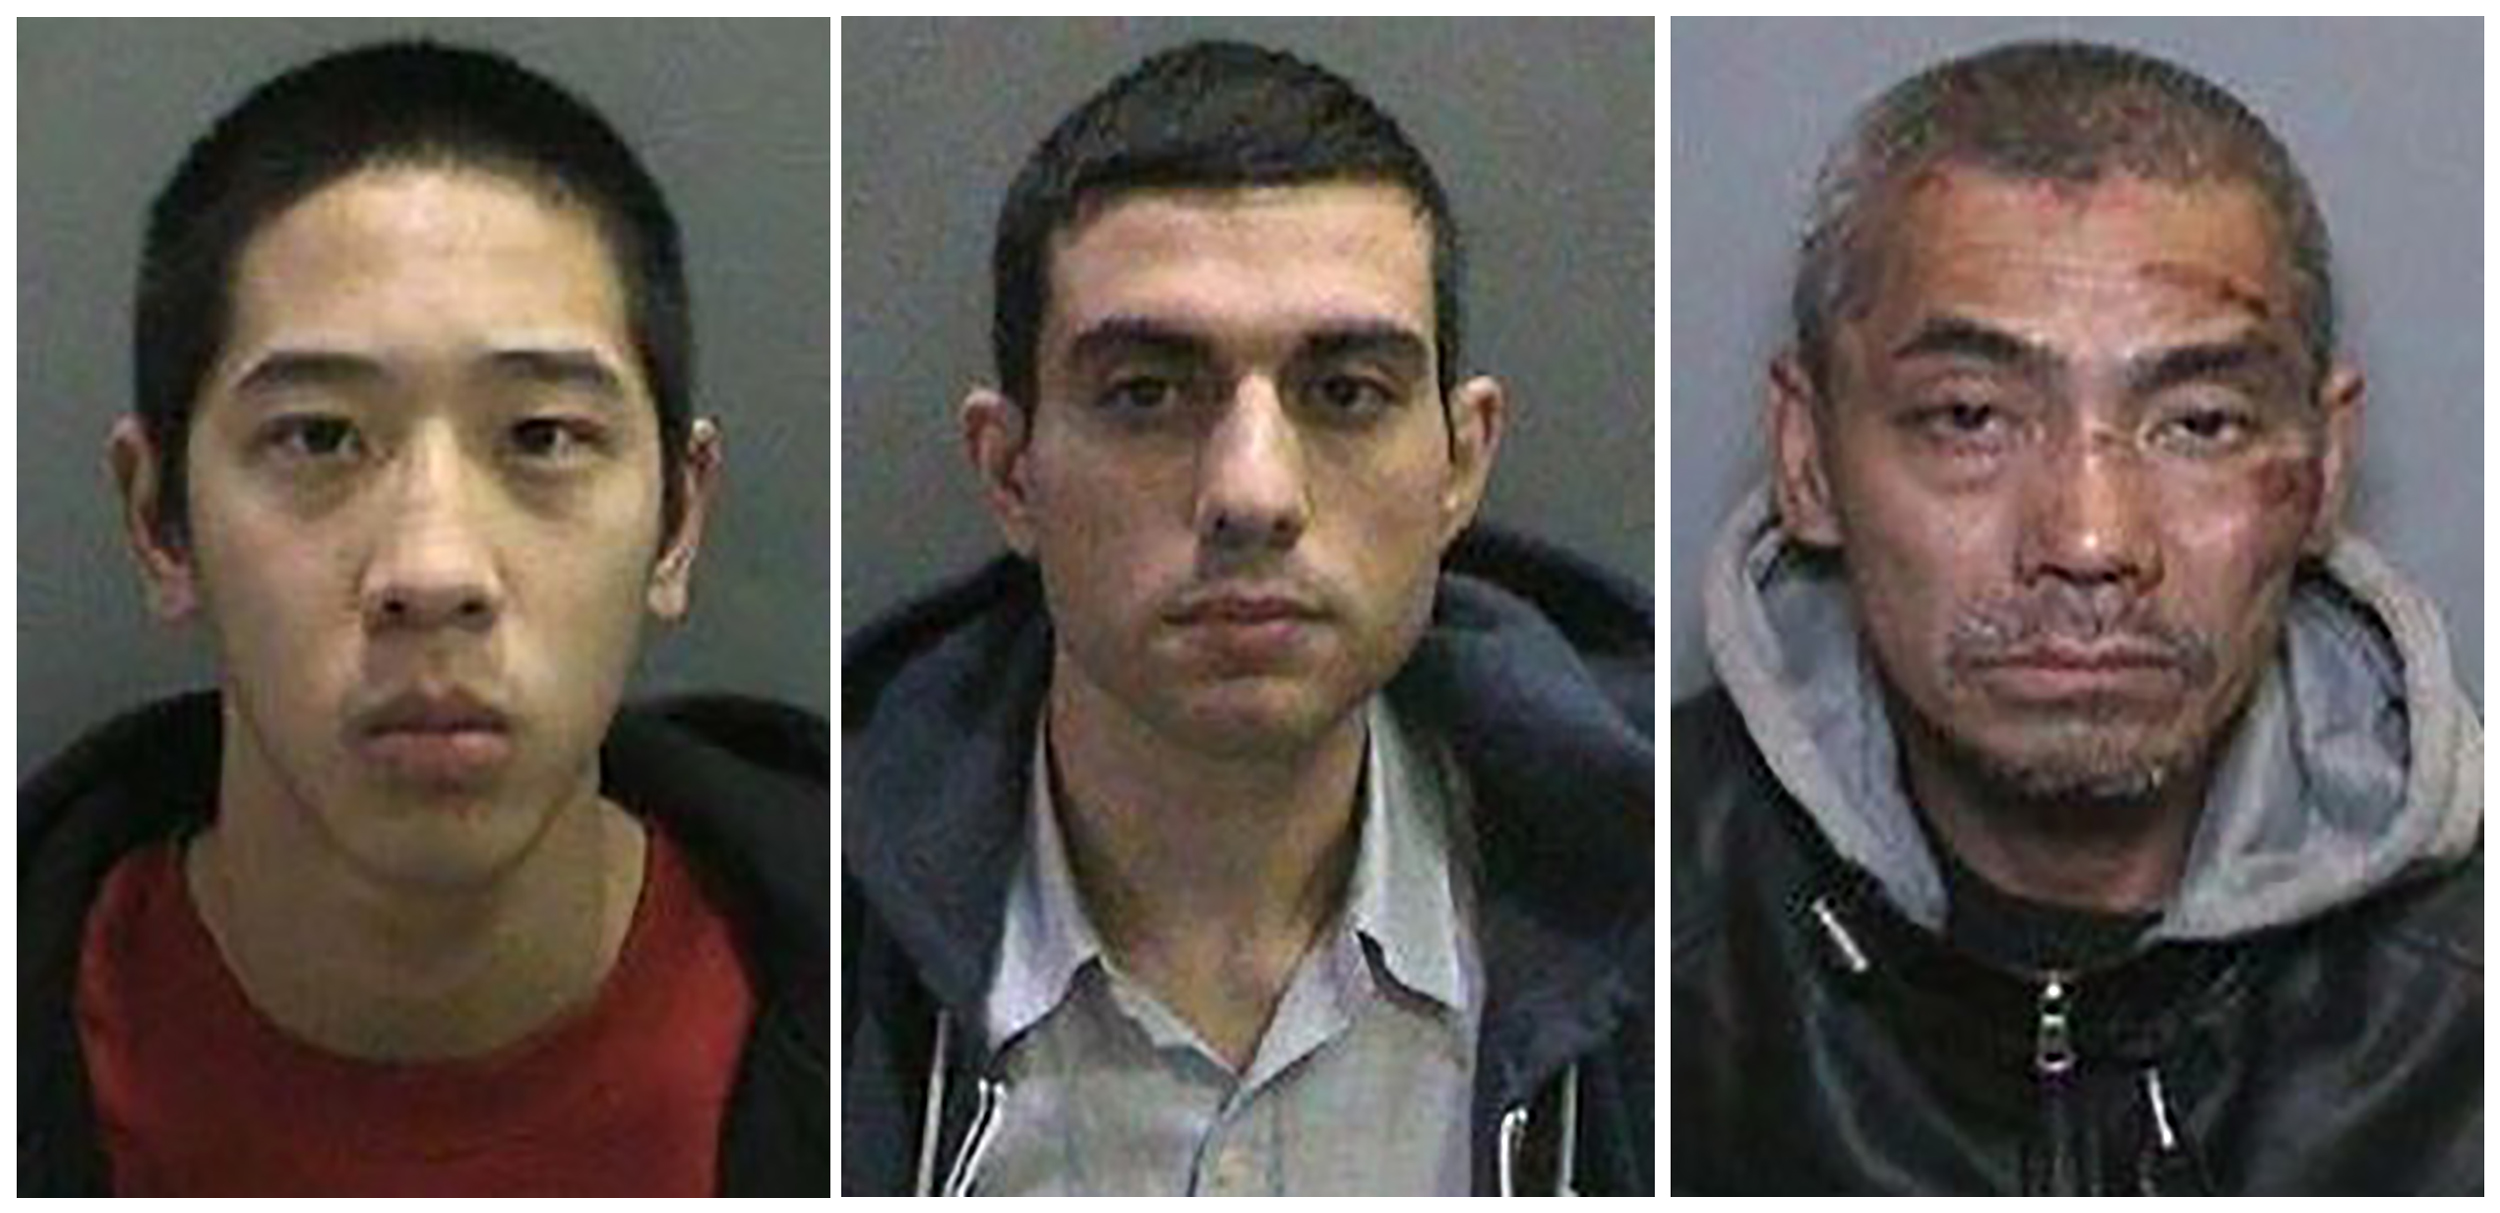 5ad0f8aa6d Sheriff  Remaining 2 escaped inmates caught - CBS News